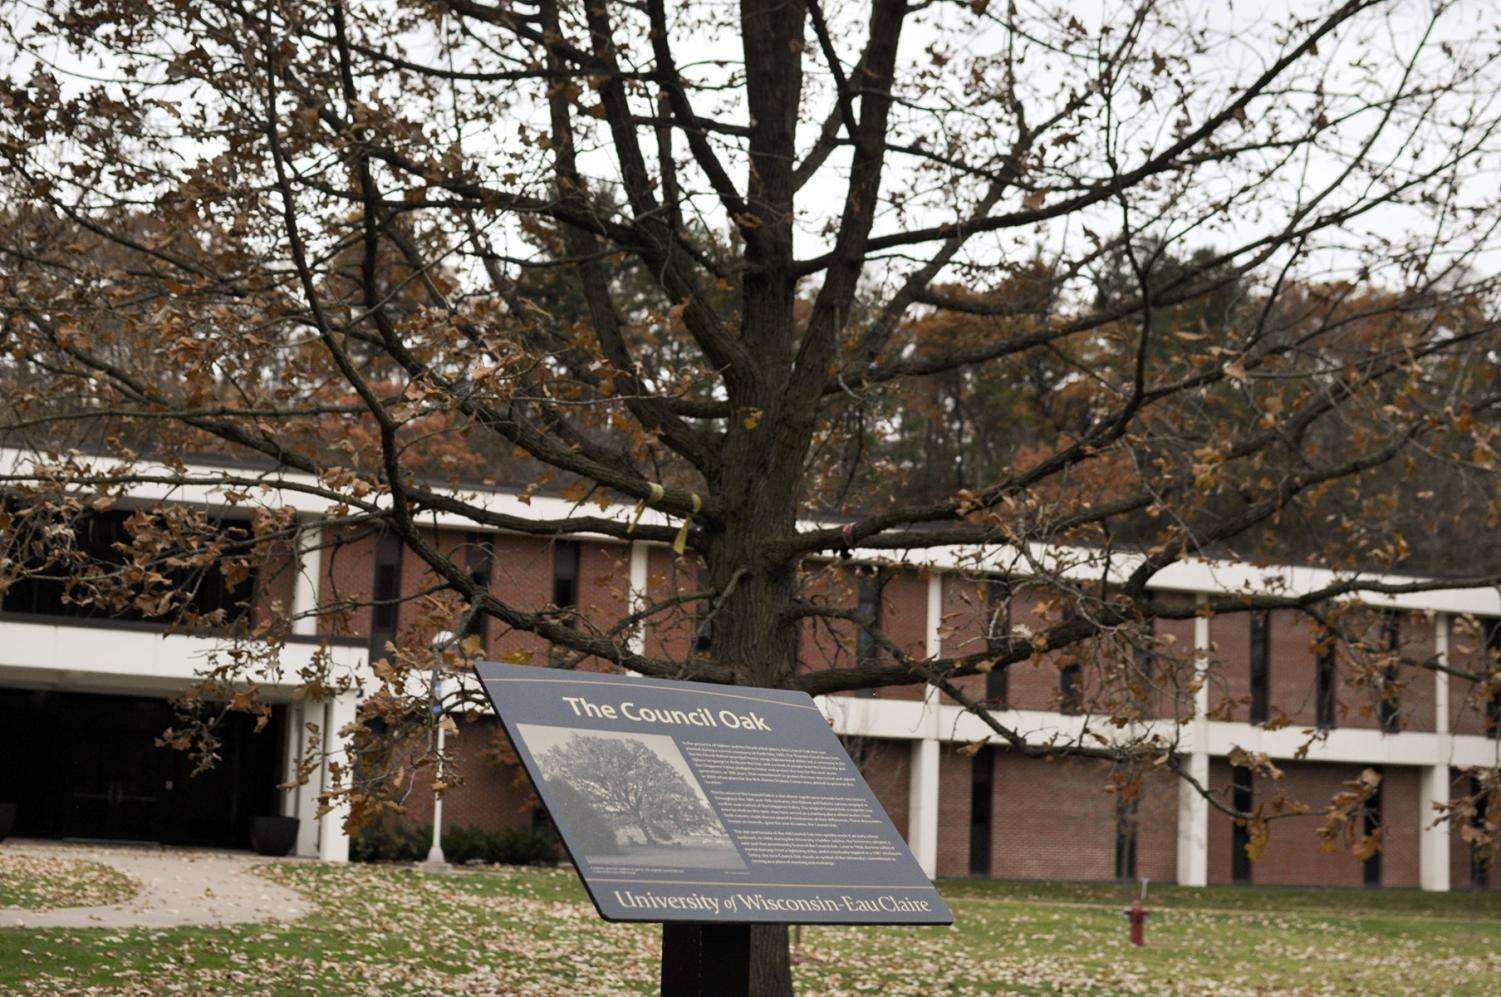 The Council Oak's standing symbolizes the sacred land that UW-Eau Claire is placed on.